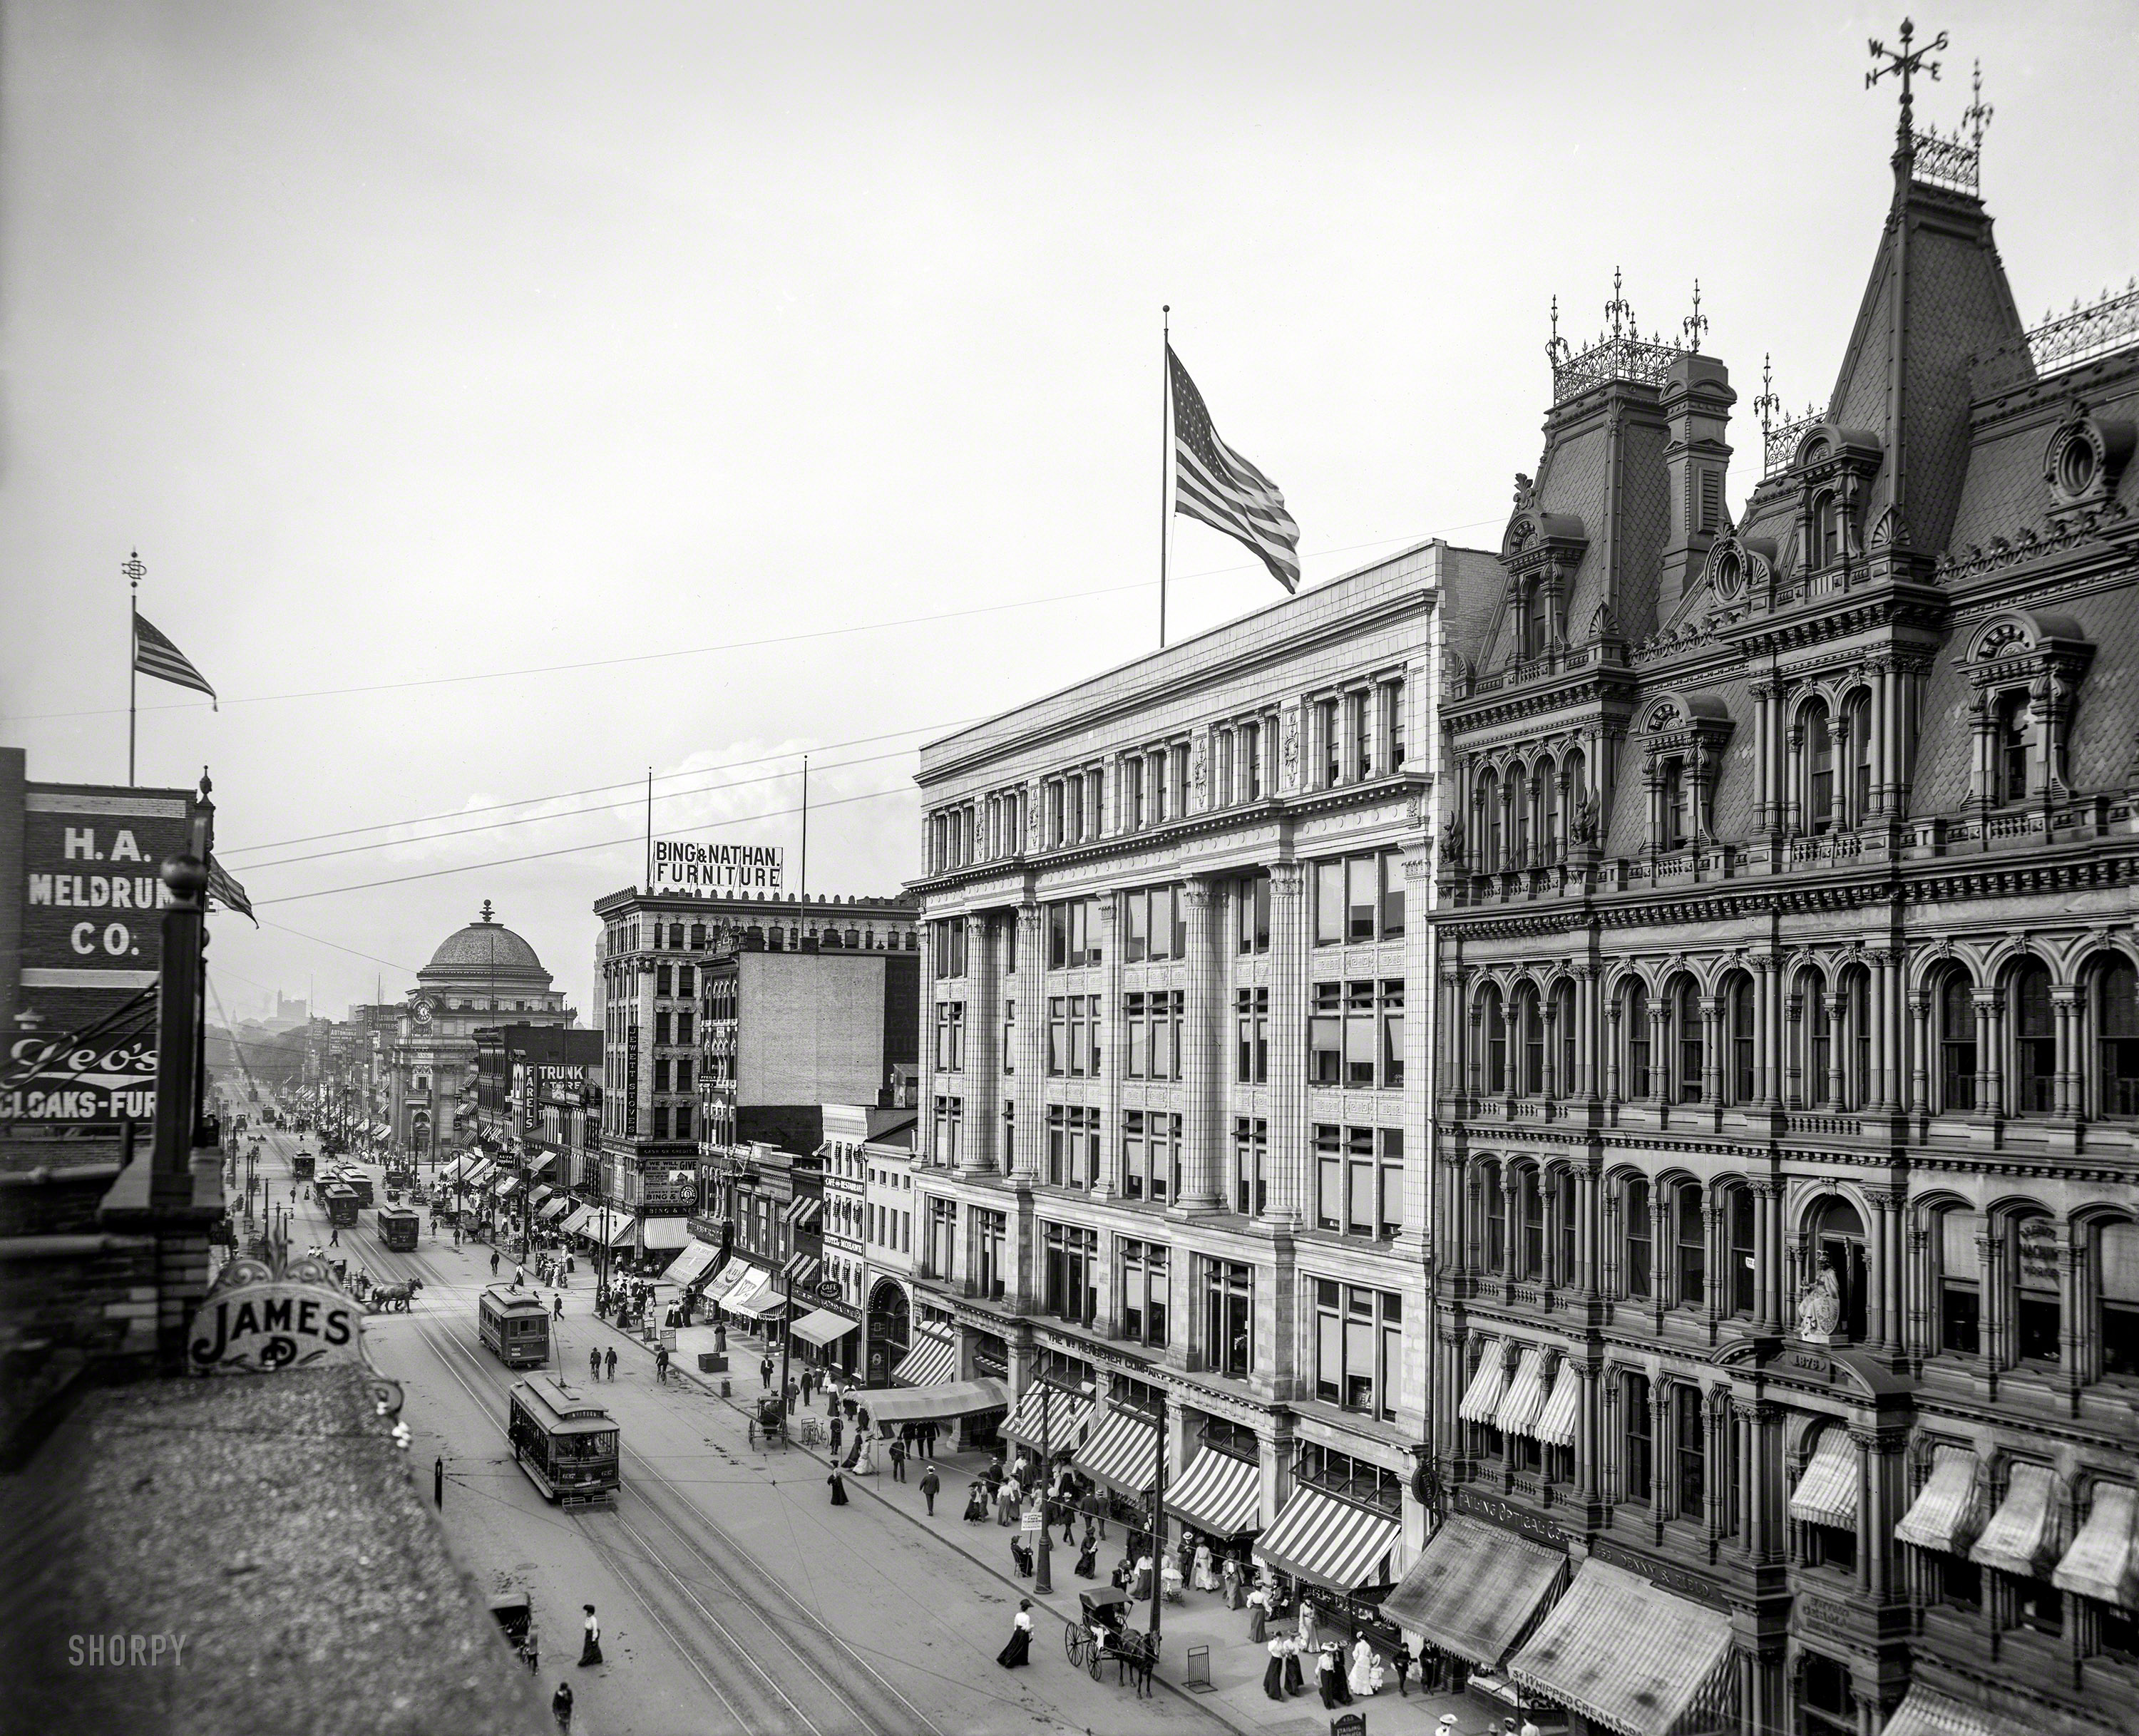 Shorpy Historical Photo Archive :: The Old Club: 1904